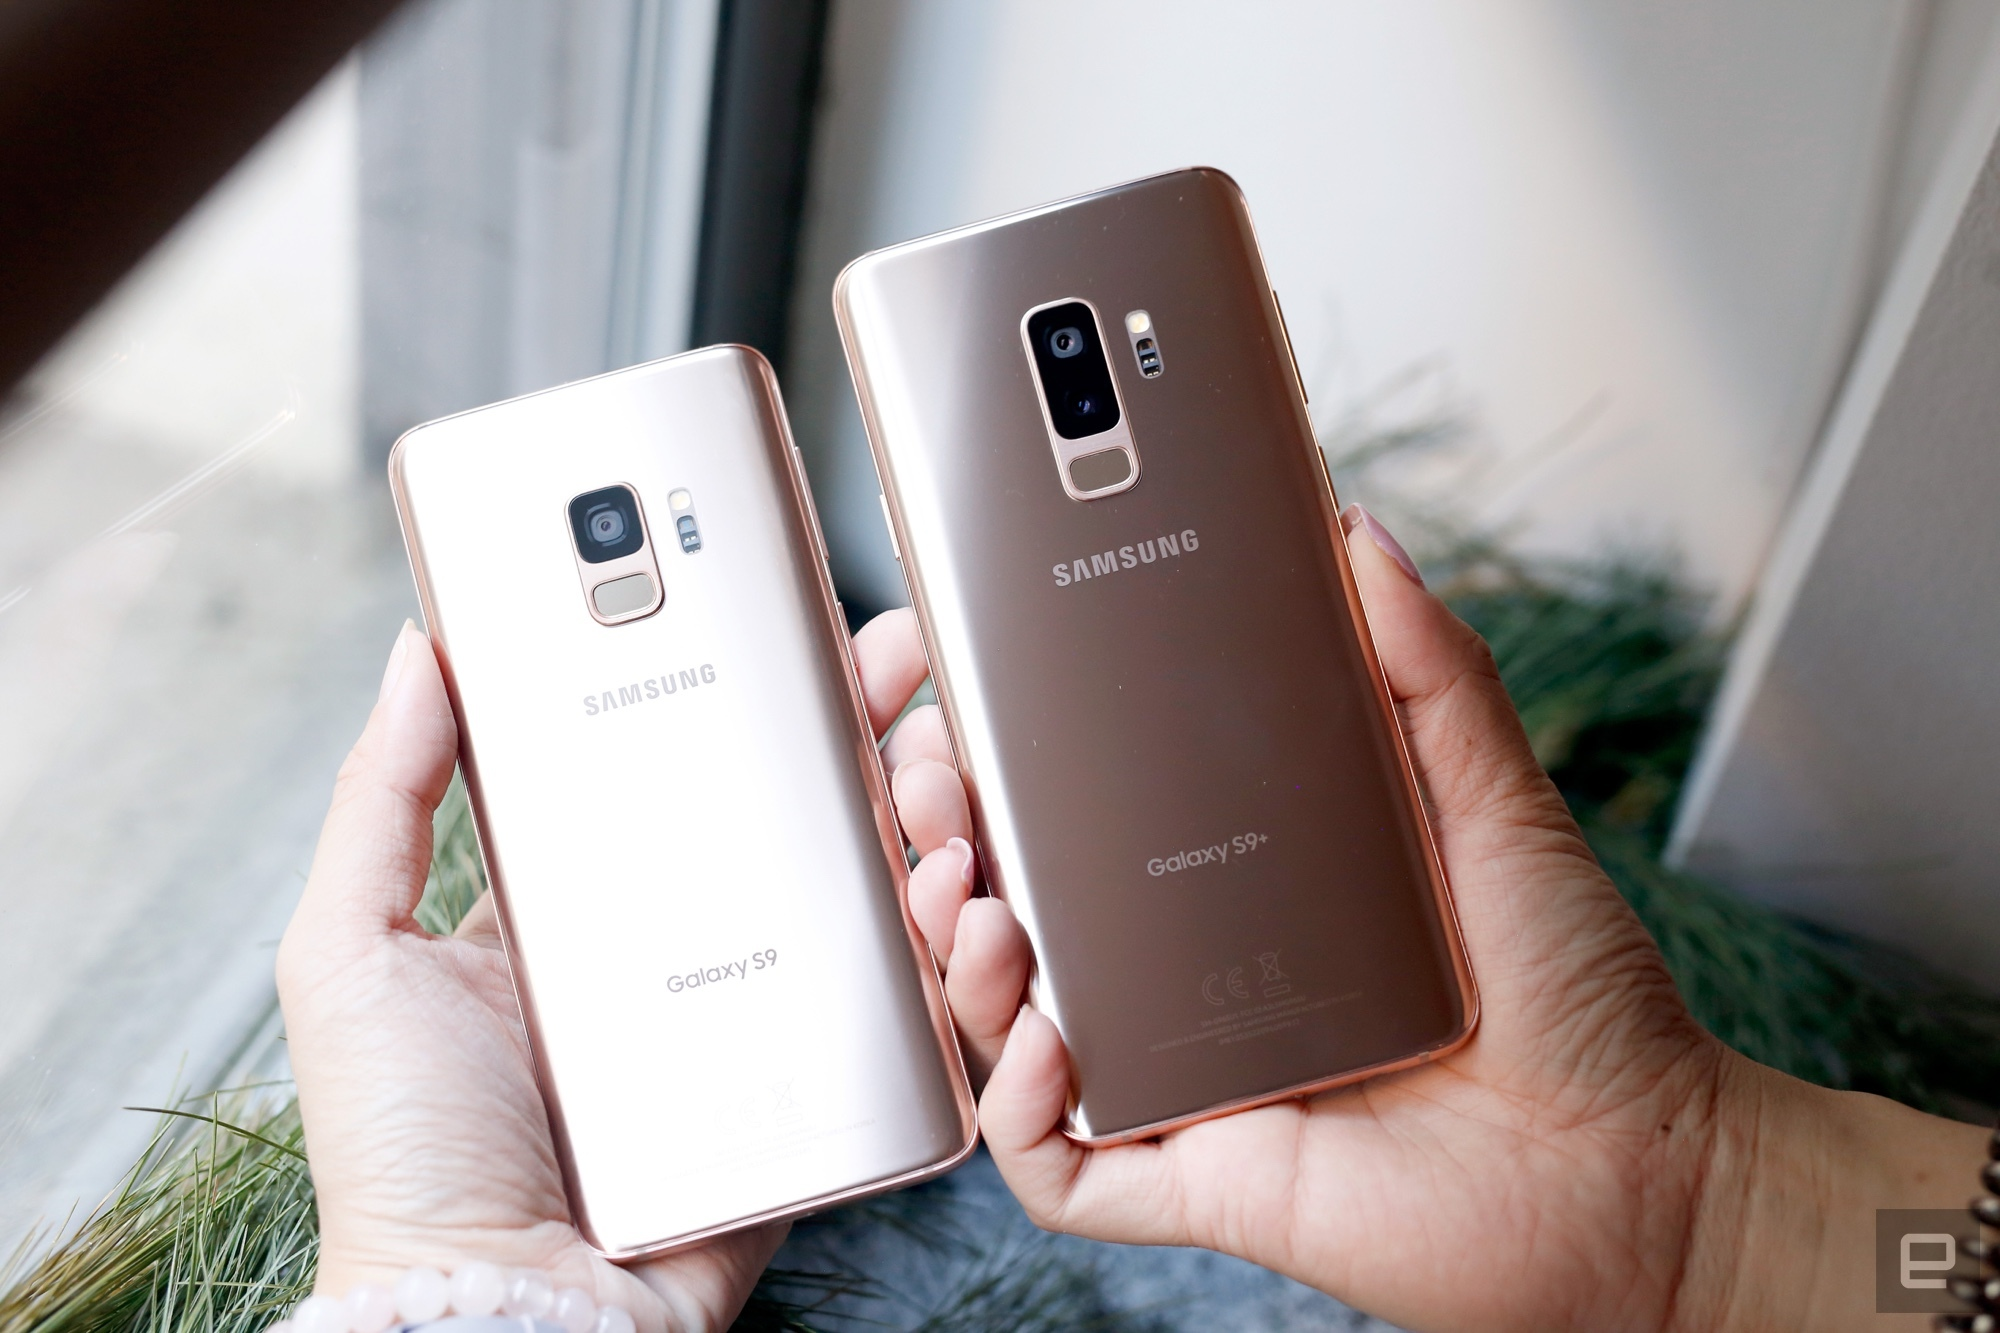 Up close with the Galaxy S9 in 'Sunrise Gold'